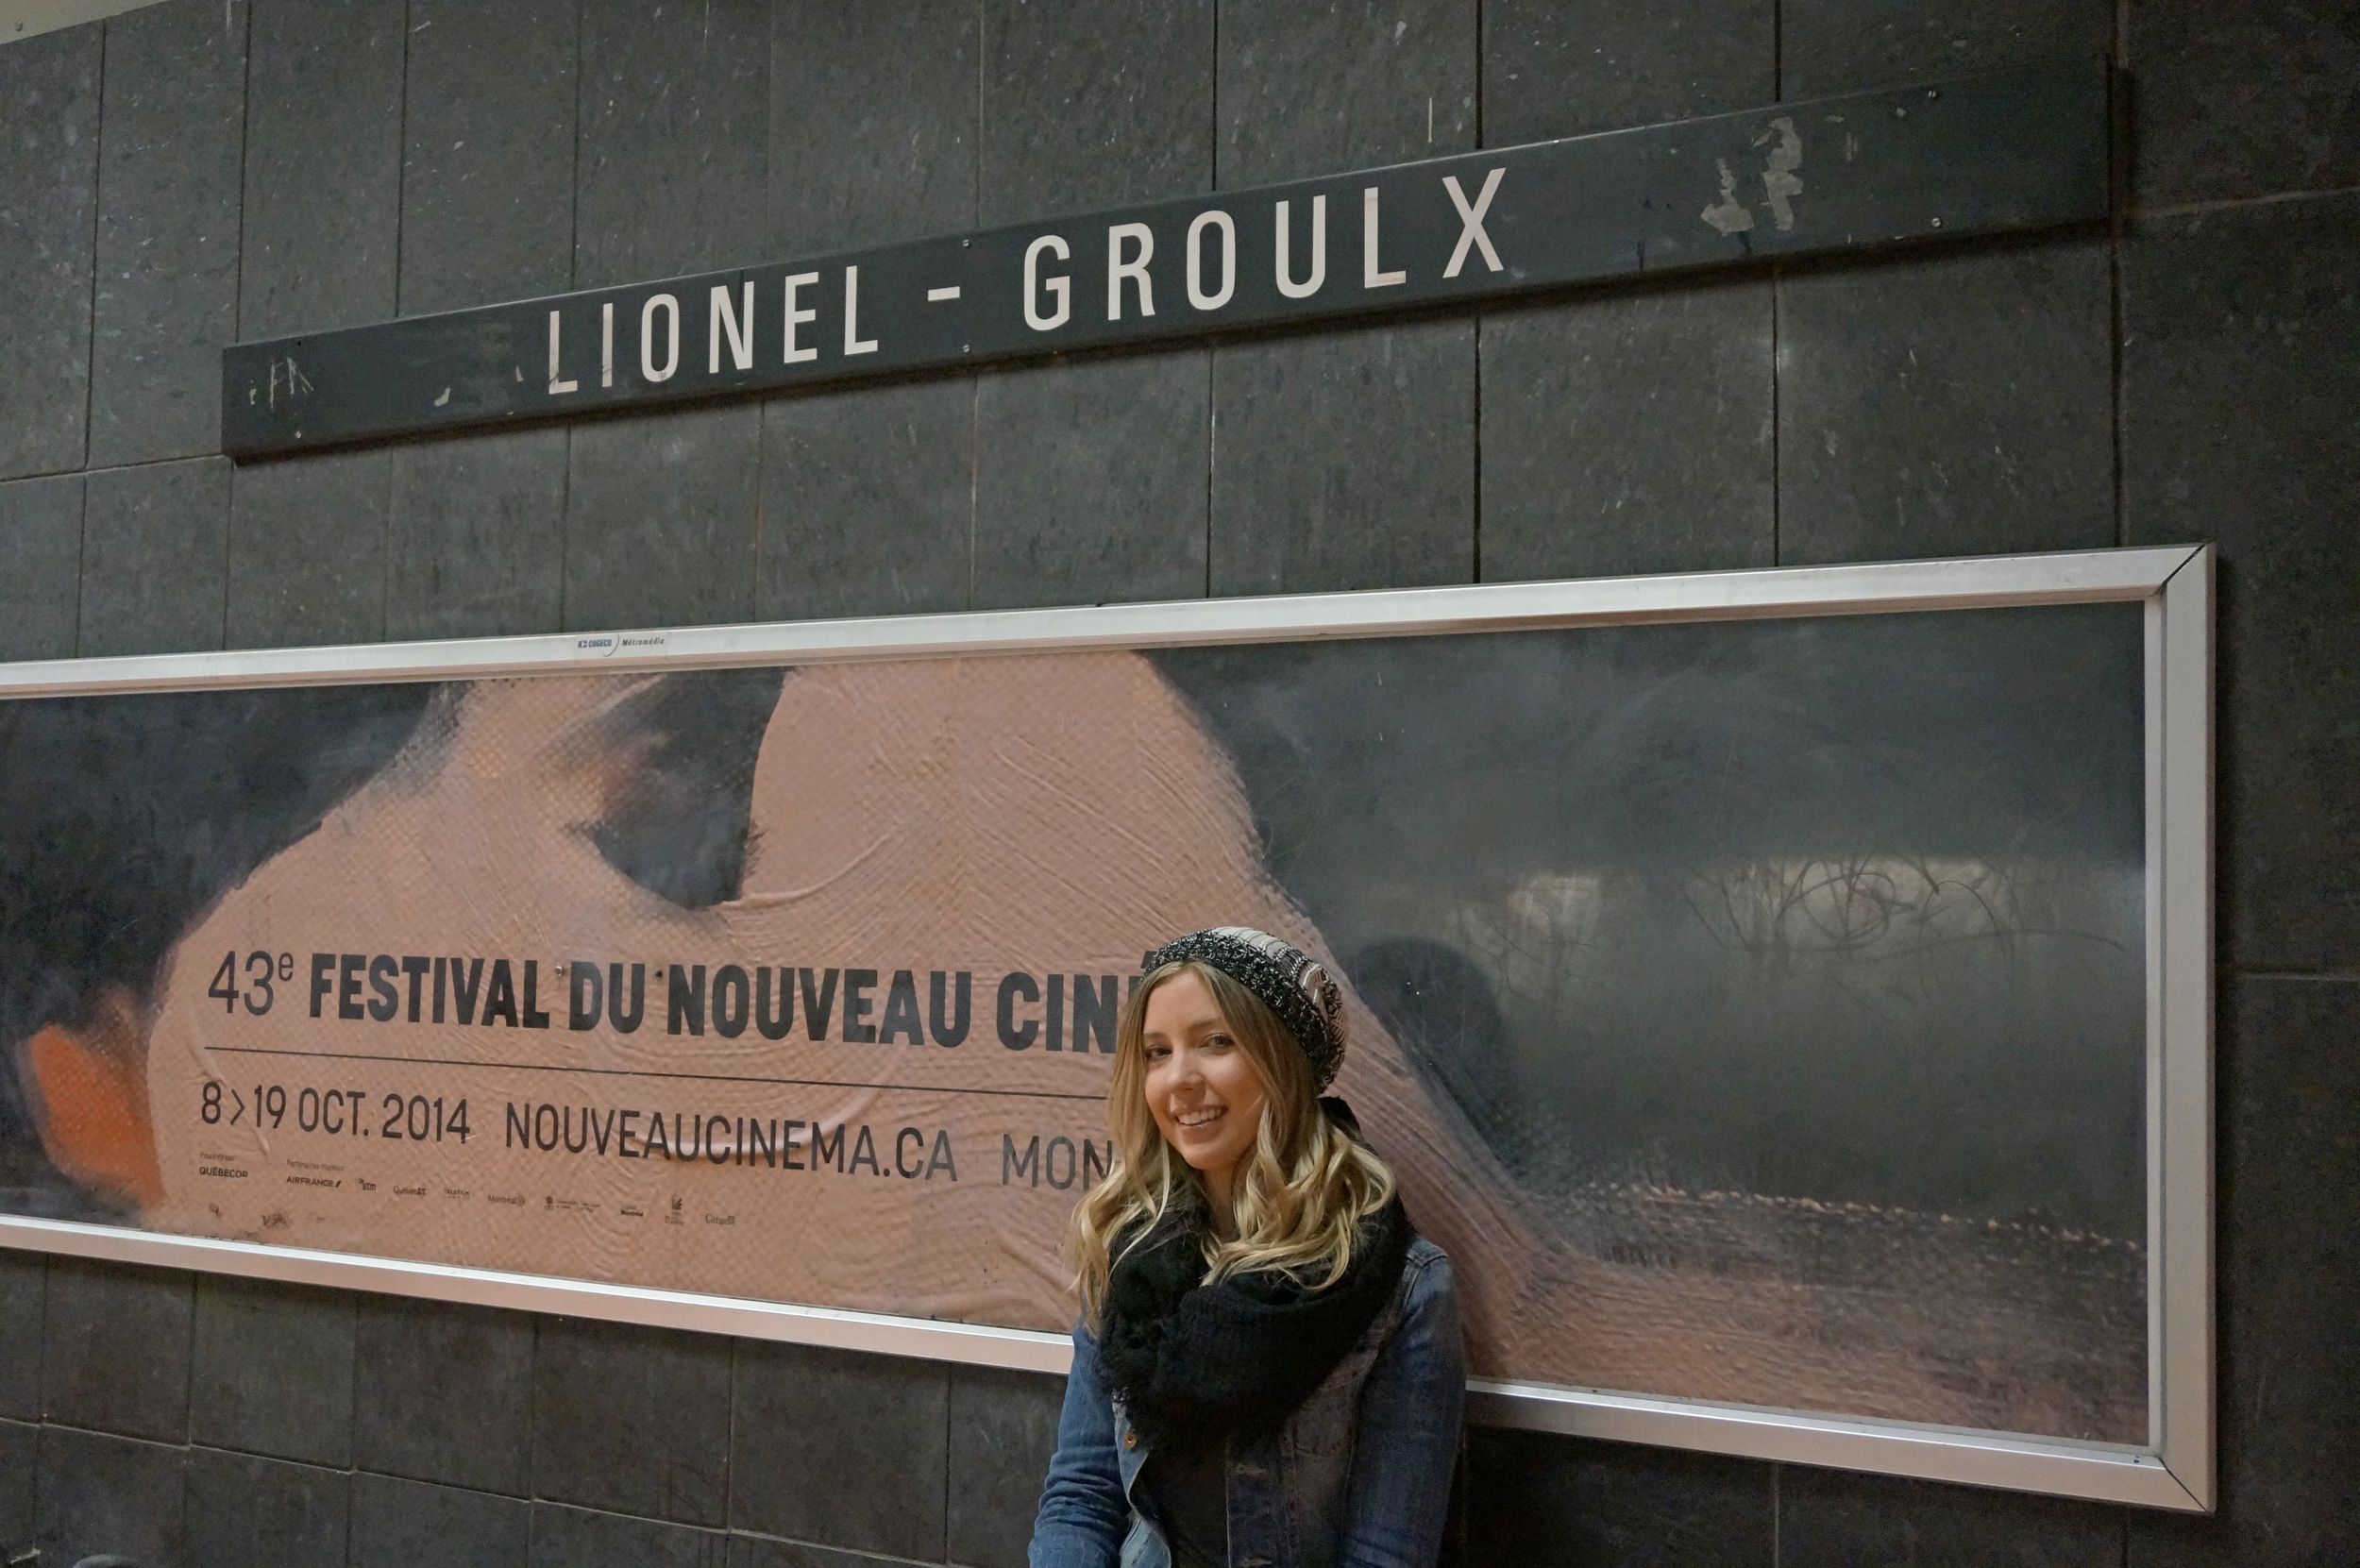 Lionel-Groulx Subway